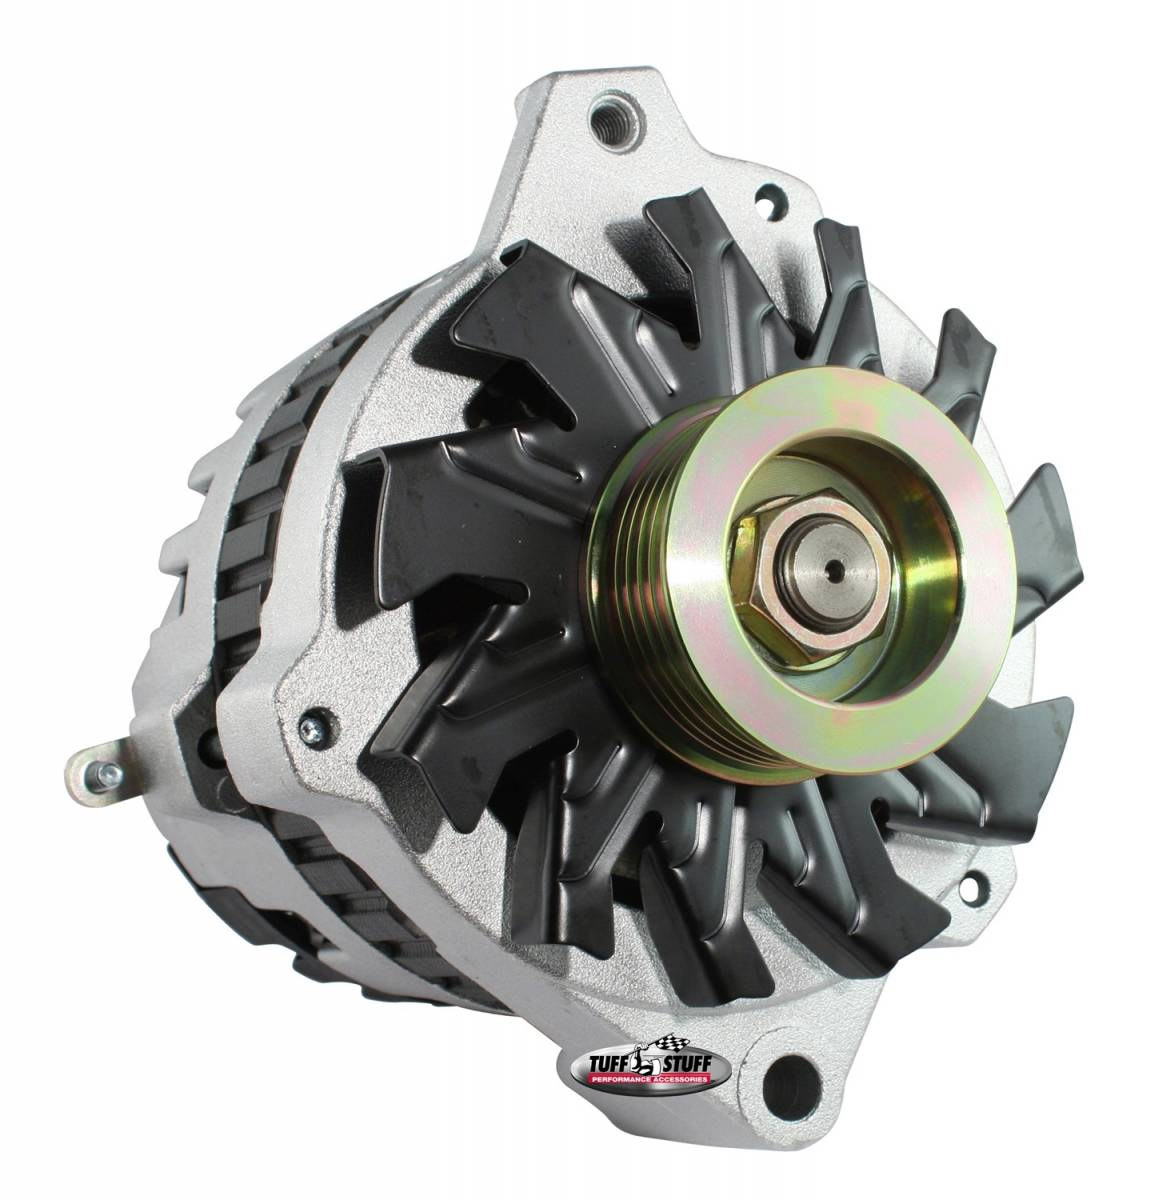 Tuff Stuff Performance - Alternator 160 AMP 1 Wire Or OEM 6 Groove Pulley 6.125 in. Bolt To Bolt Factory Cast PLUS+ 7866K-16G